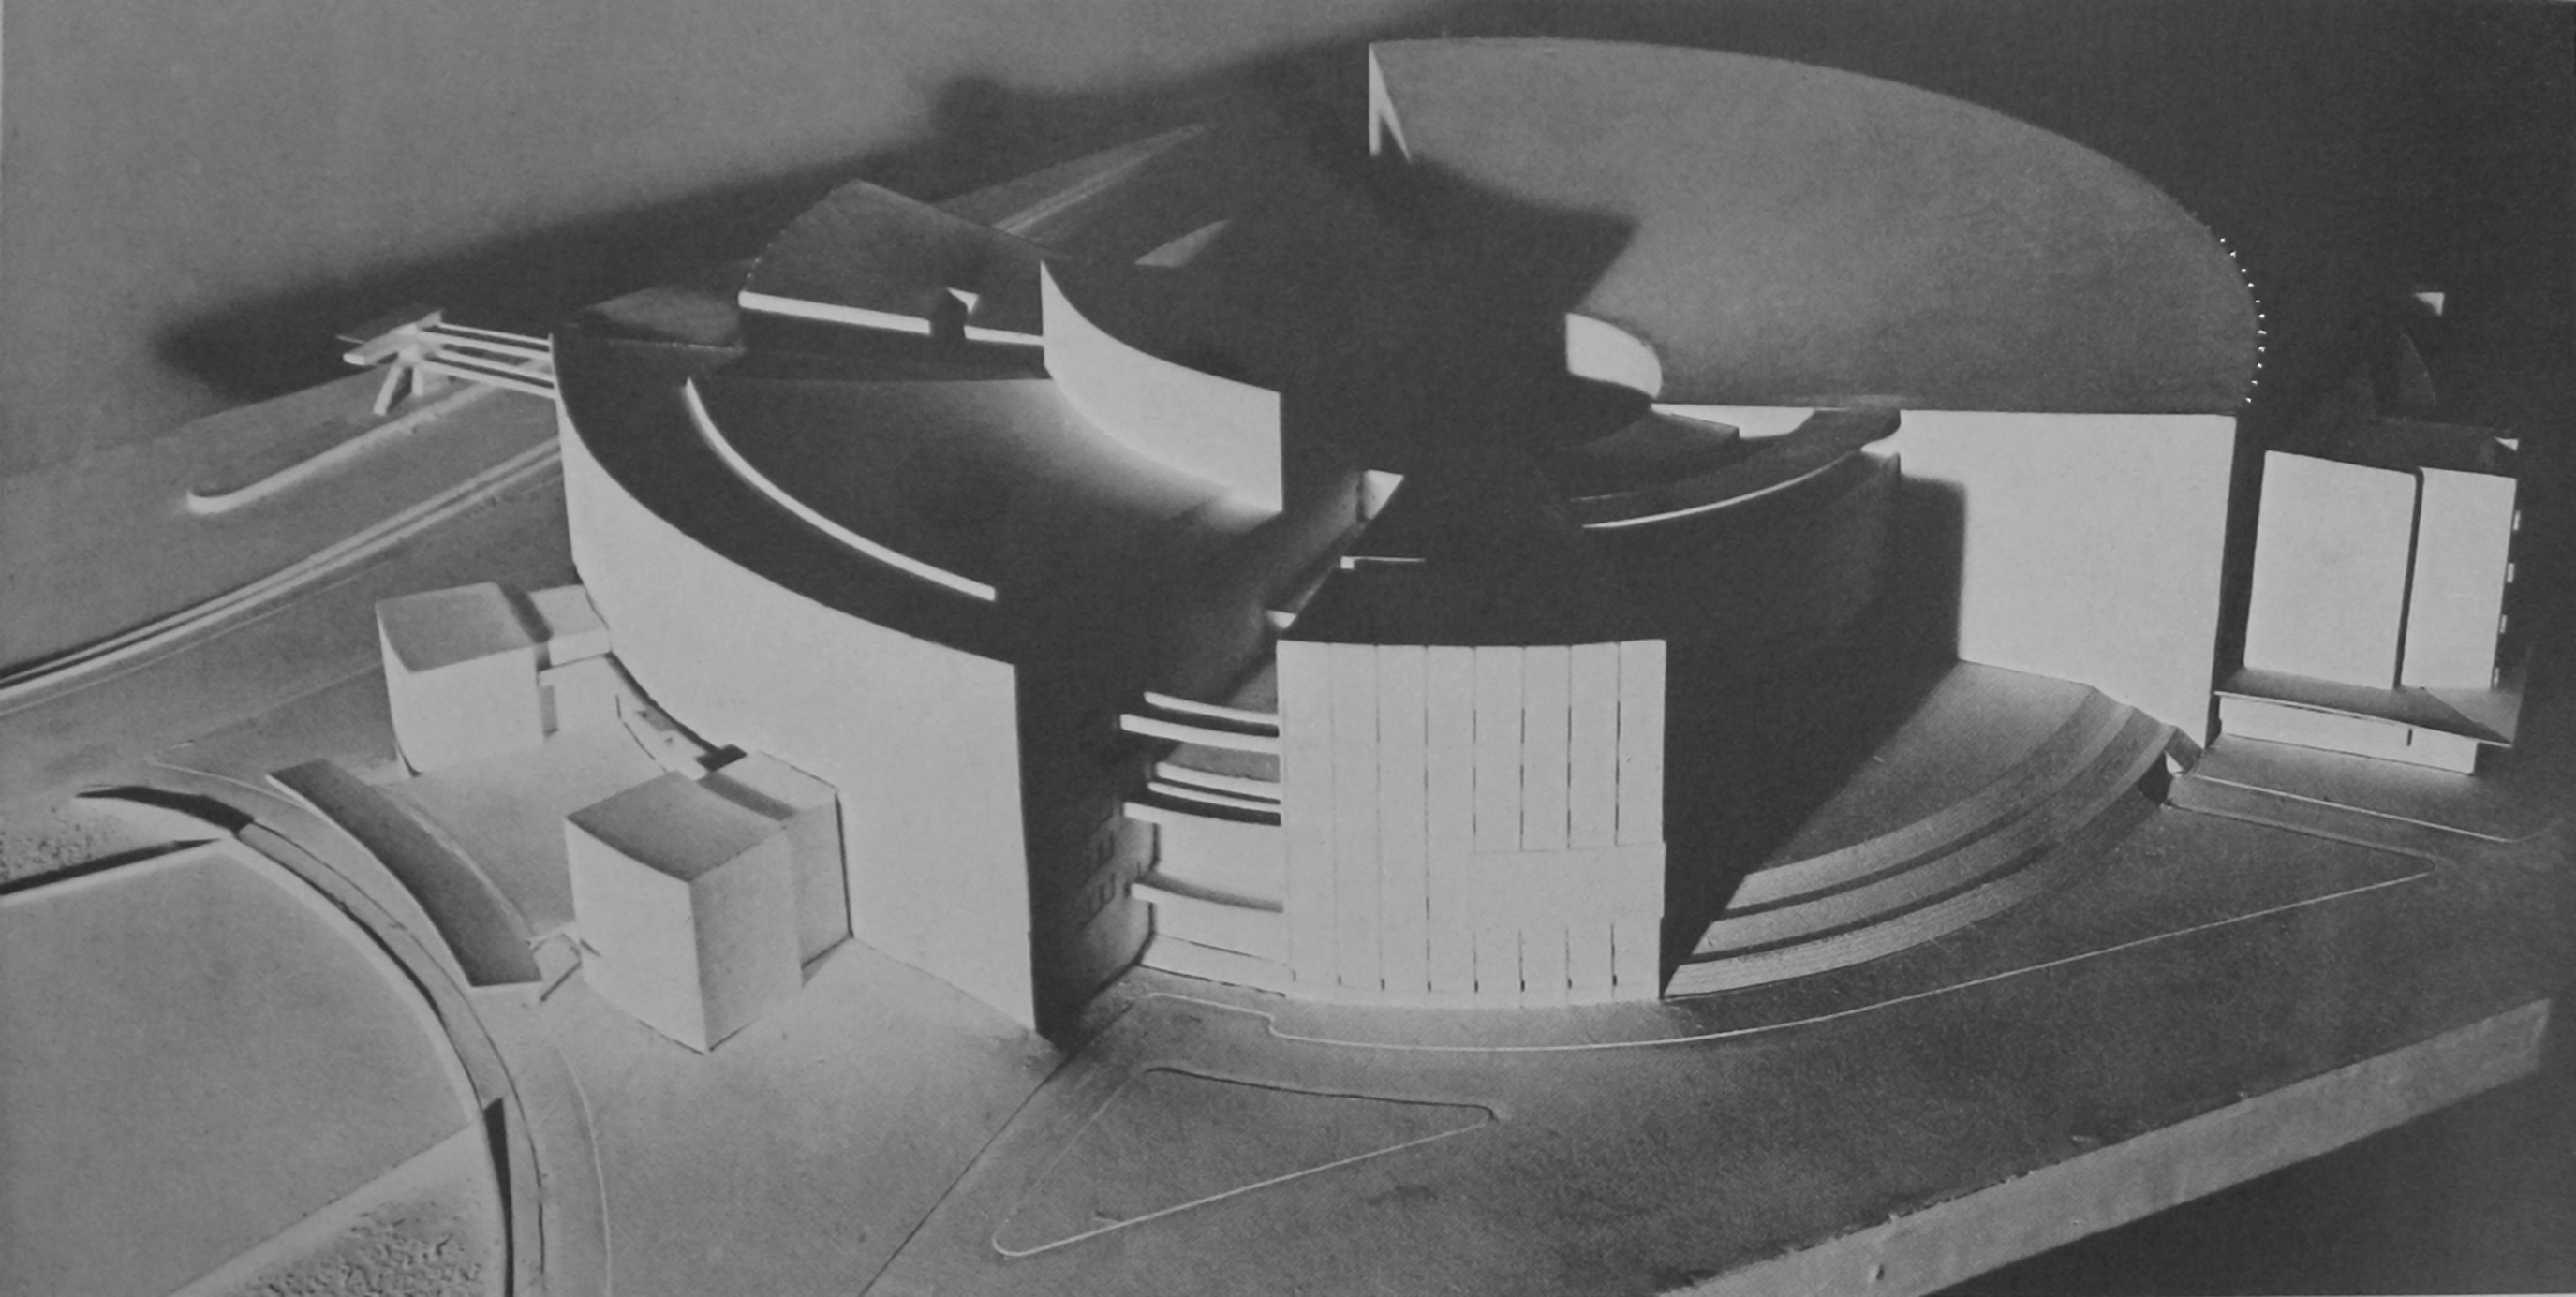 Walter Gropius, model of a proposal for the Palace of the Soviets (1931)